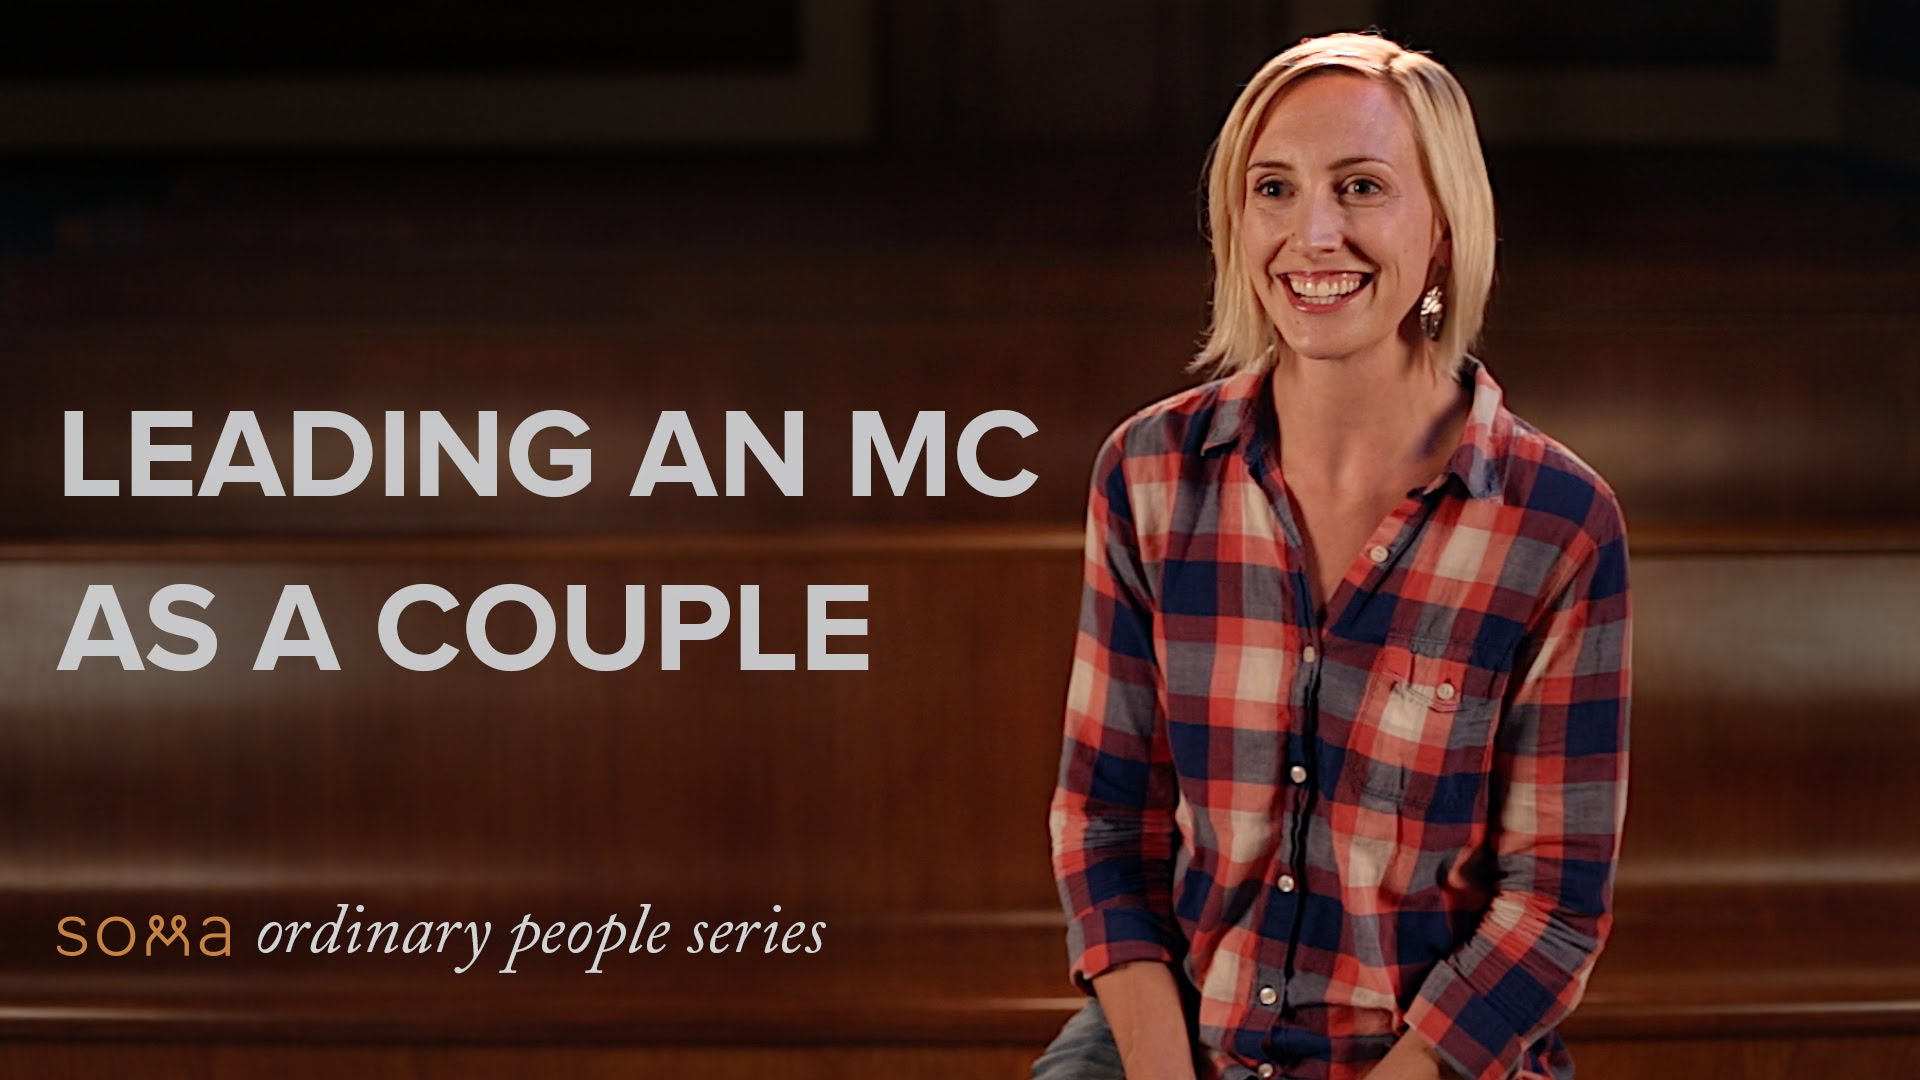 leading-mc-as-couple